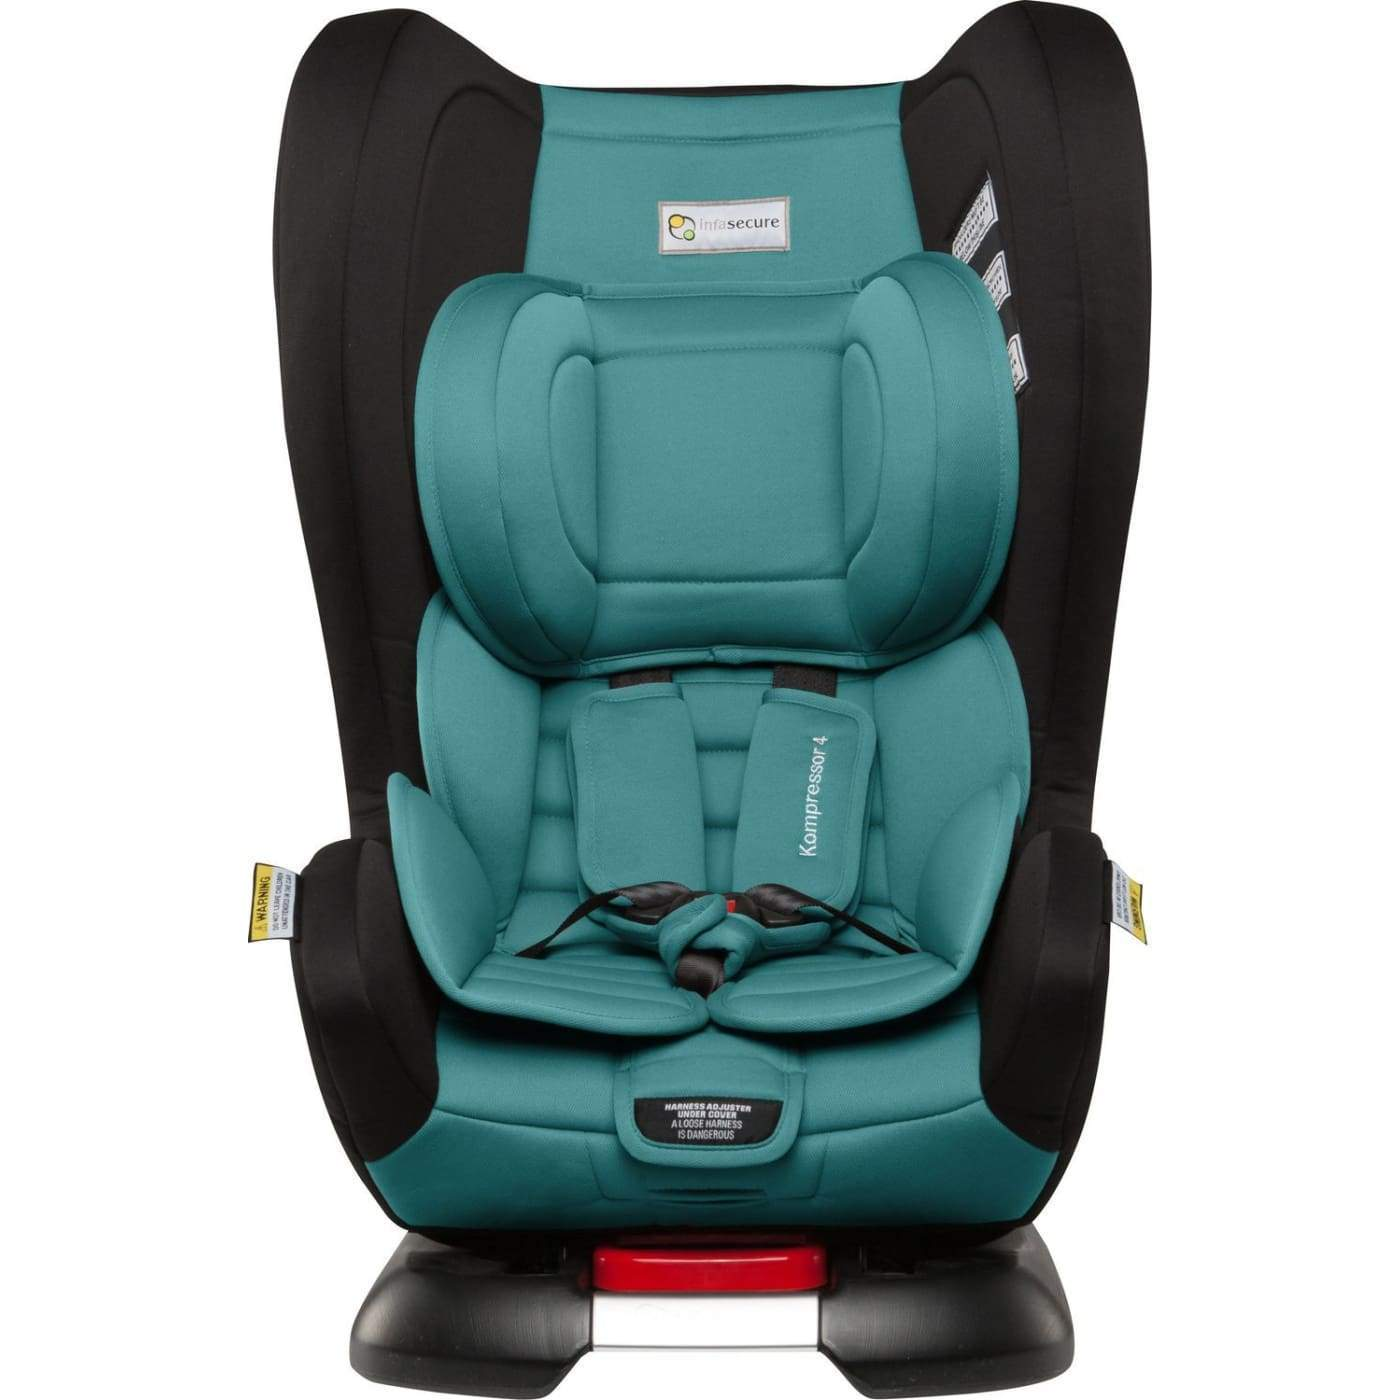 InfaSecure Astra Kompressor 4 Isofix Convertible Car Seat 0-4YR - Aqua - CAR SEATS - CONV ISOFIX CAR SEATS (0-4YR)